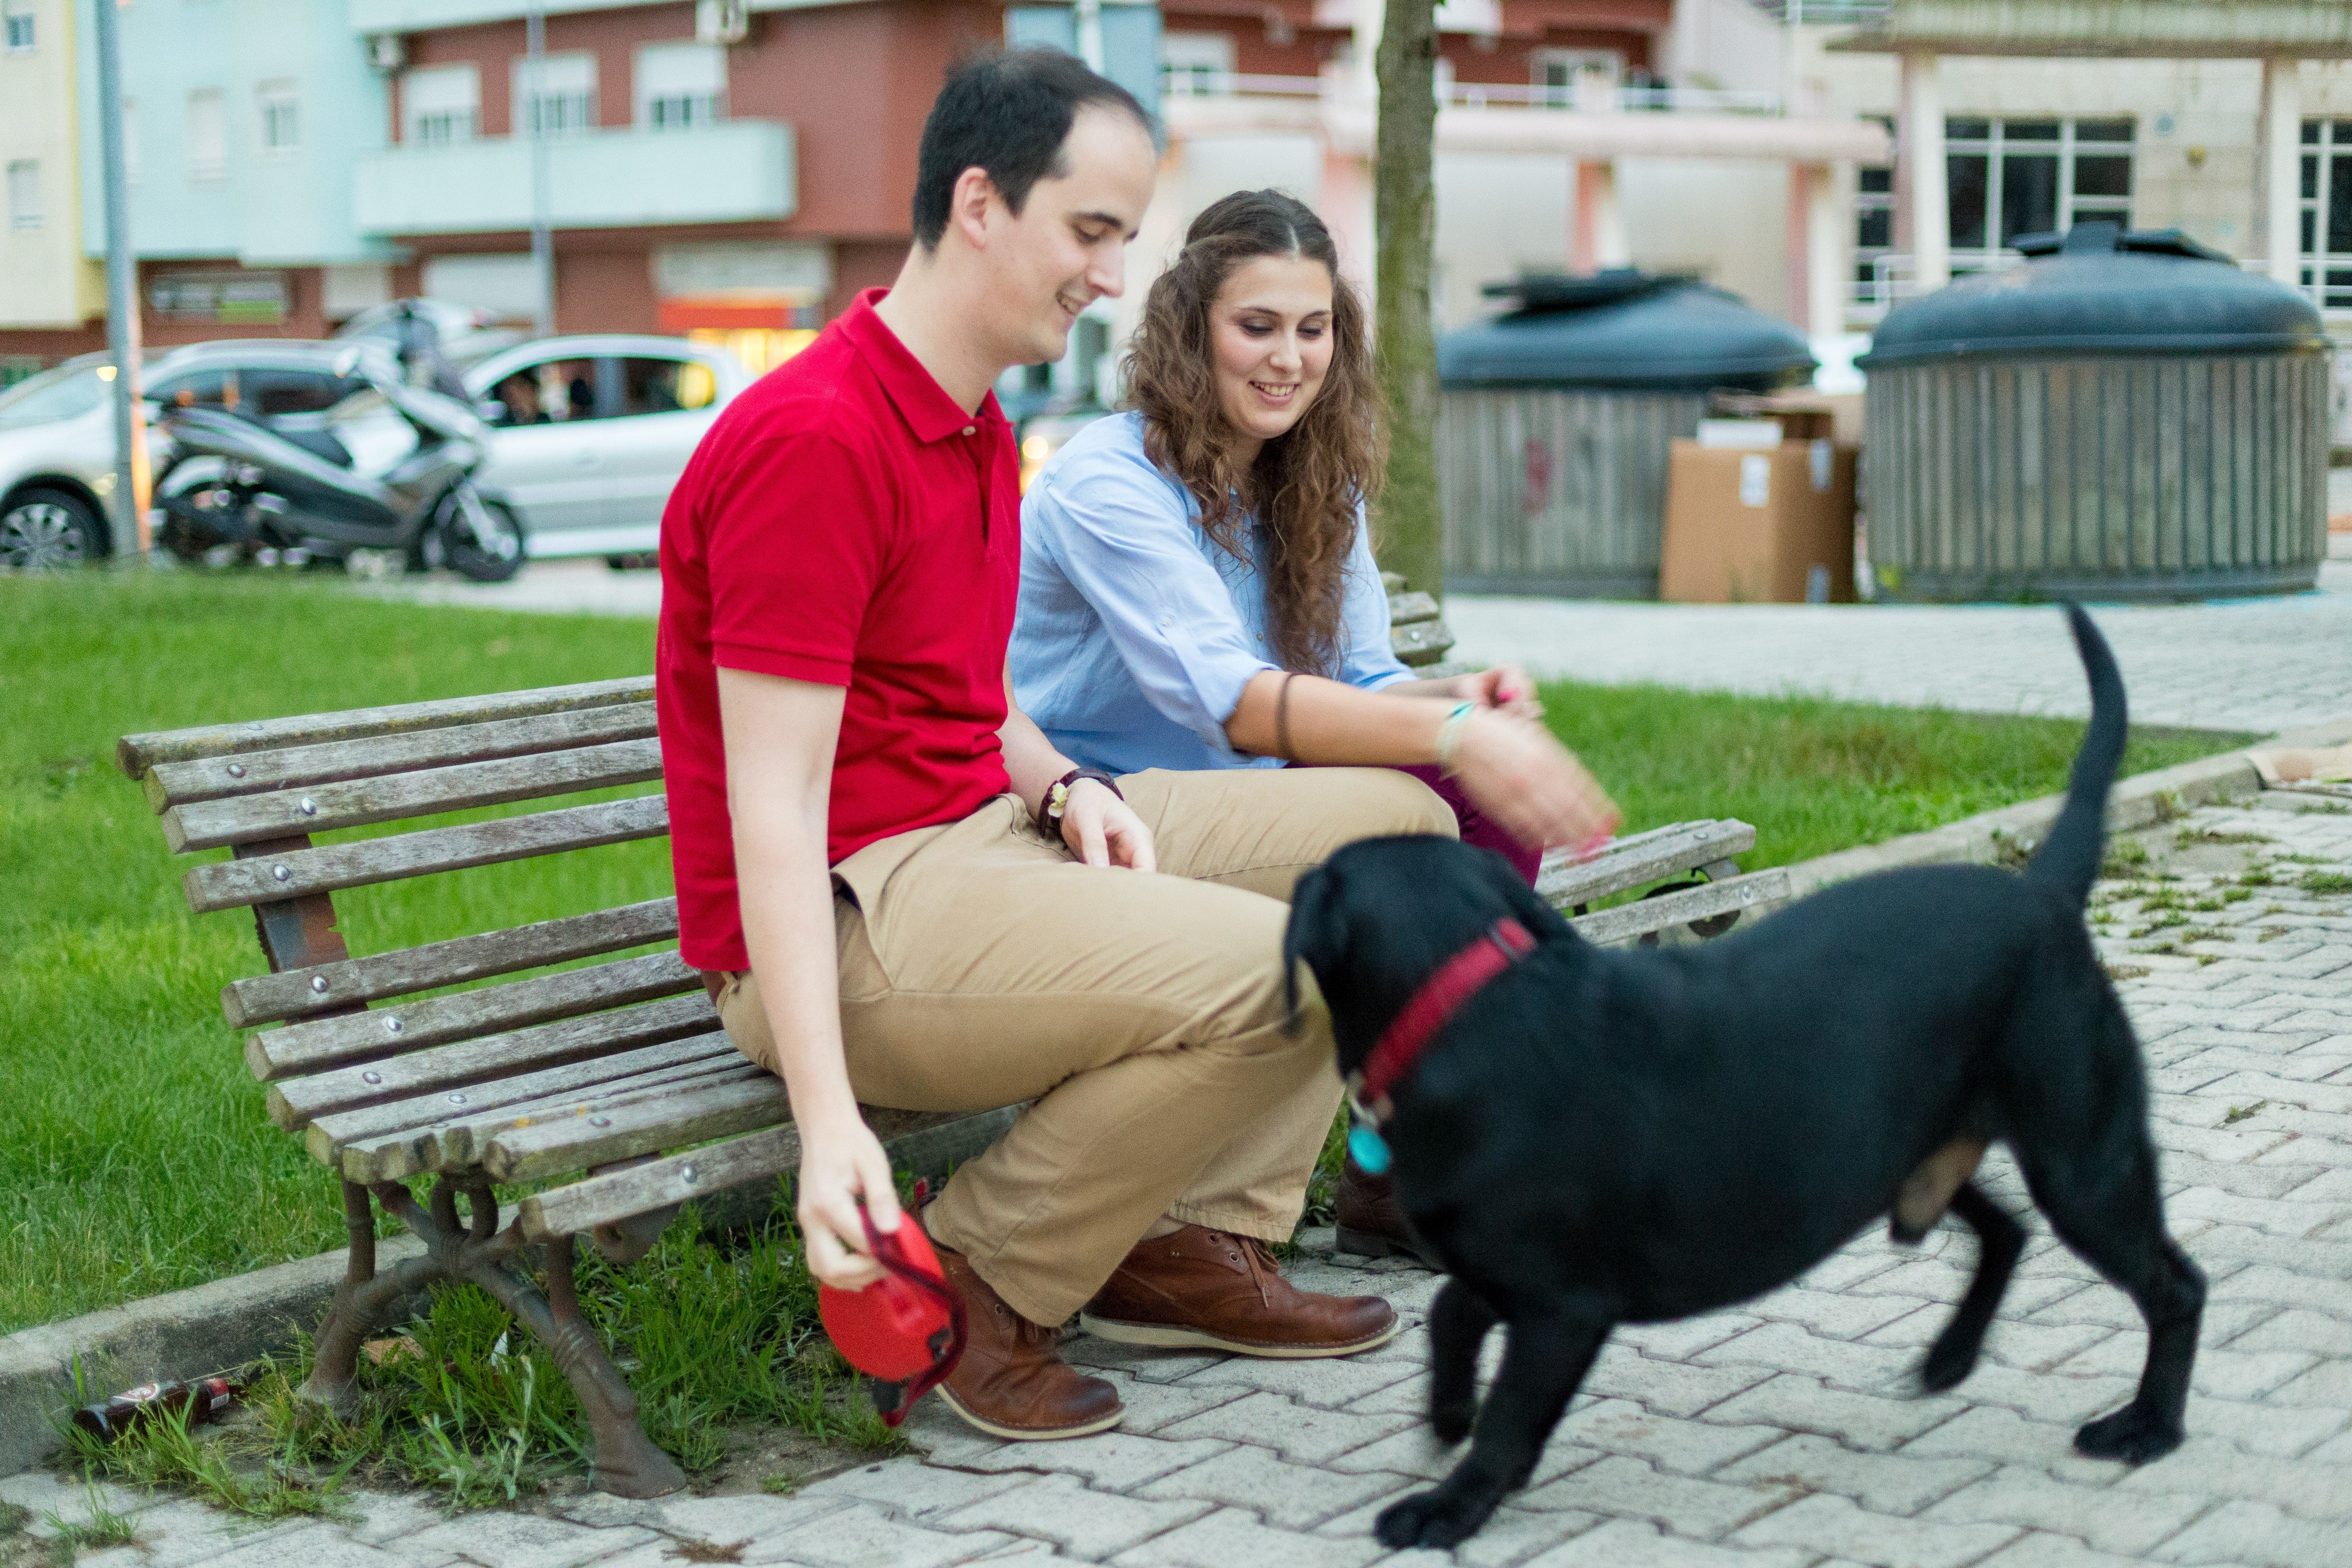 A young couple from Portugal sits on a bench and plays with a dog.